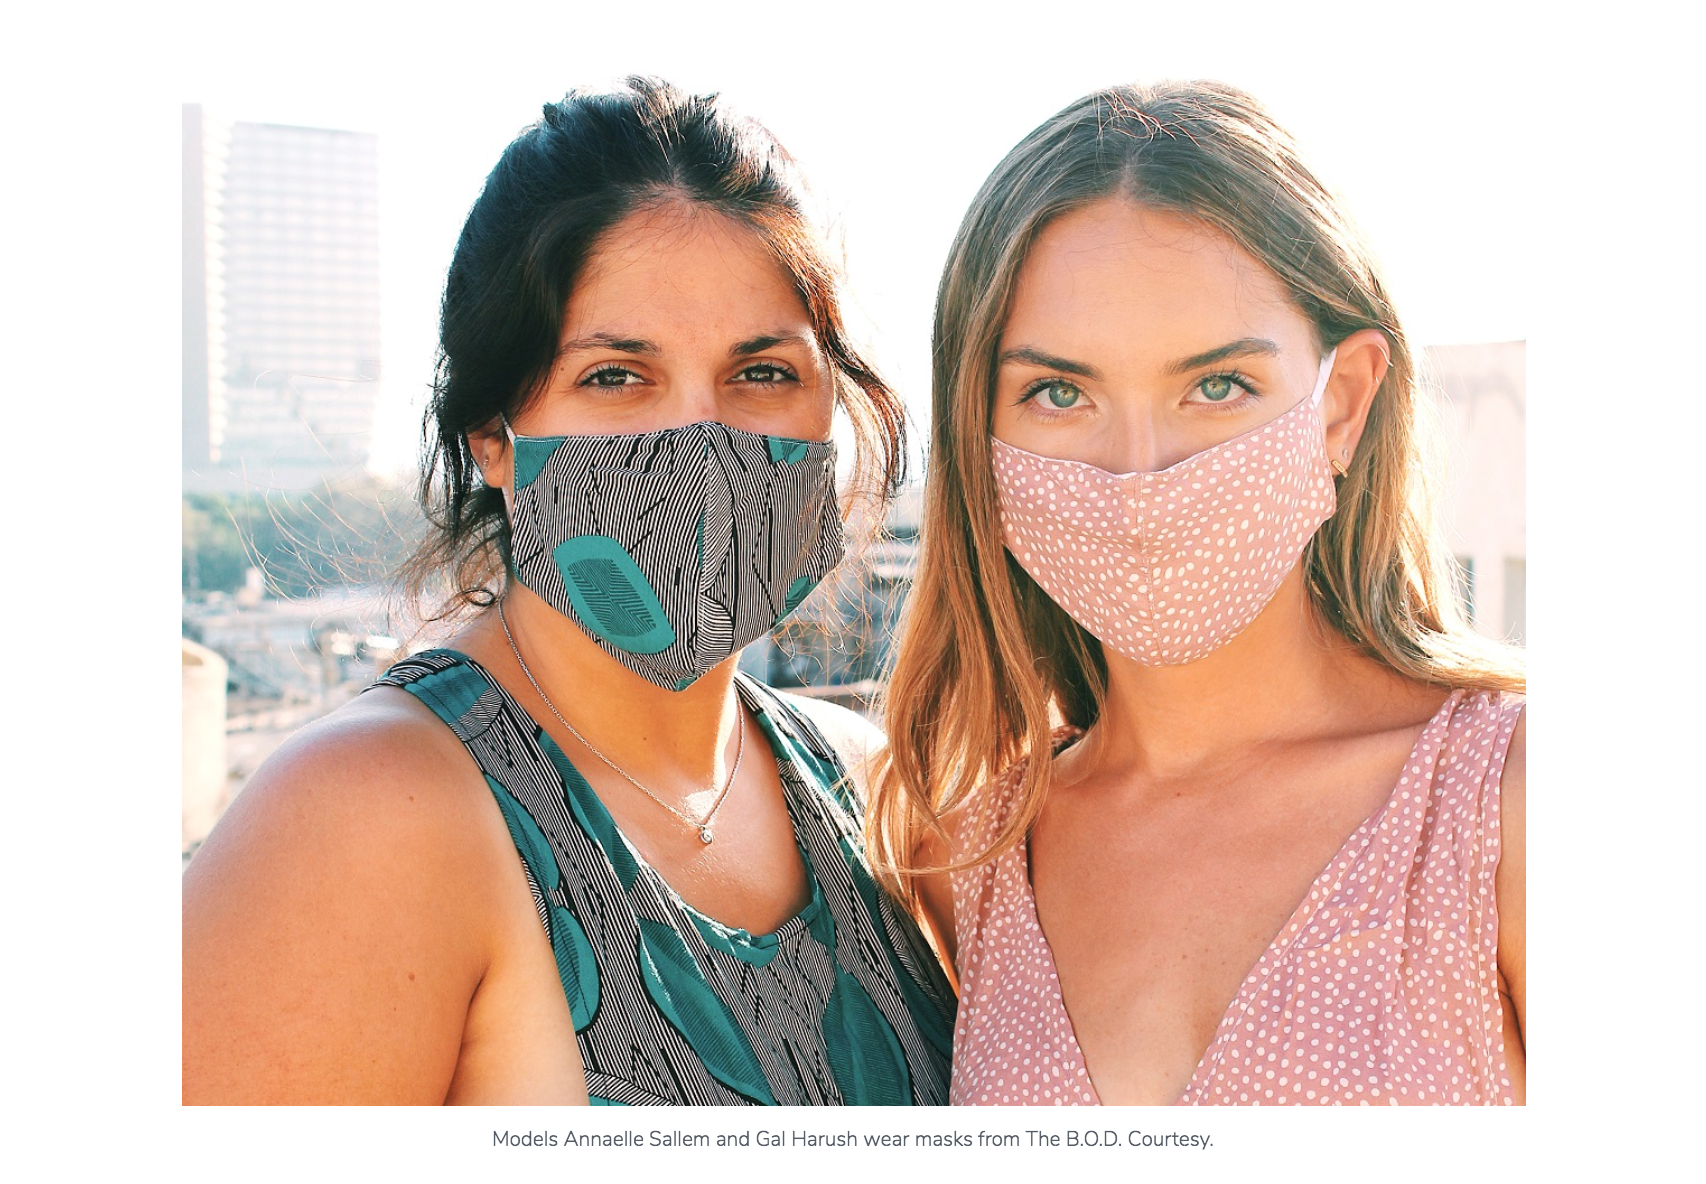 NoCamels, 10 Innovative Masks Developed in Israel, THE B.O.D, The Board of Directors